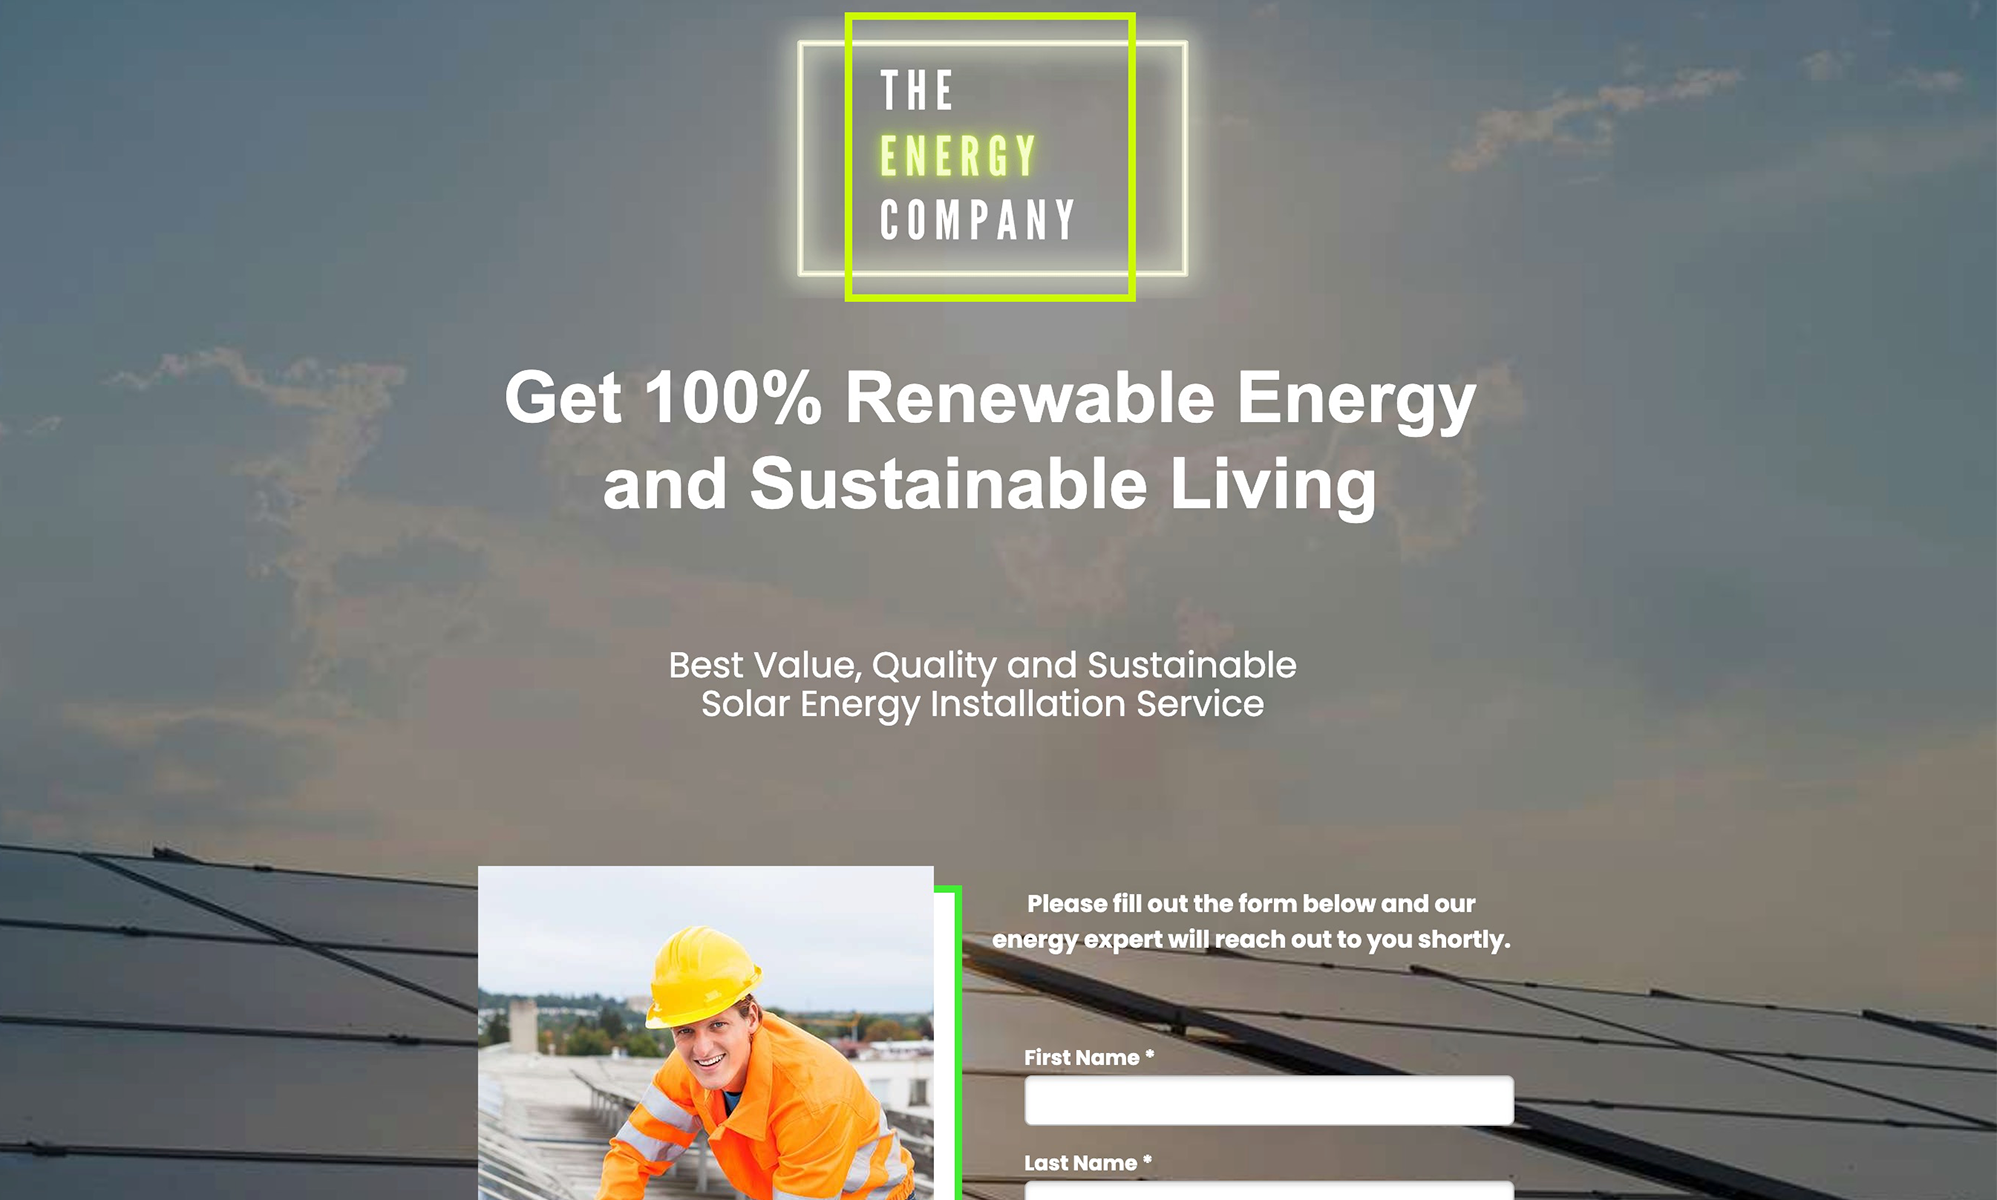 The Energy Company Landing Page